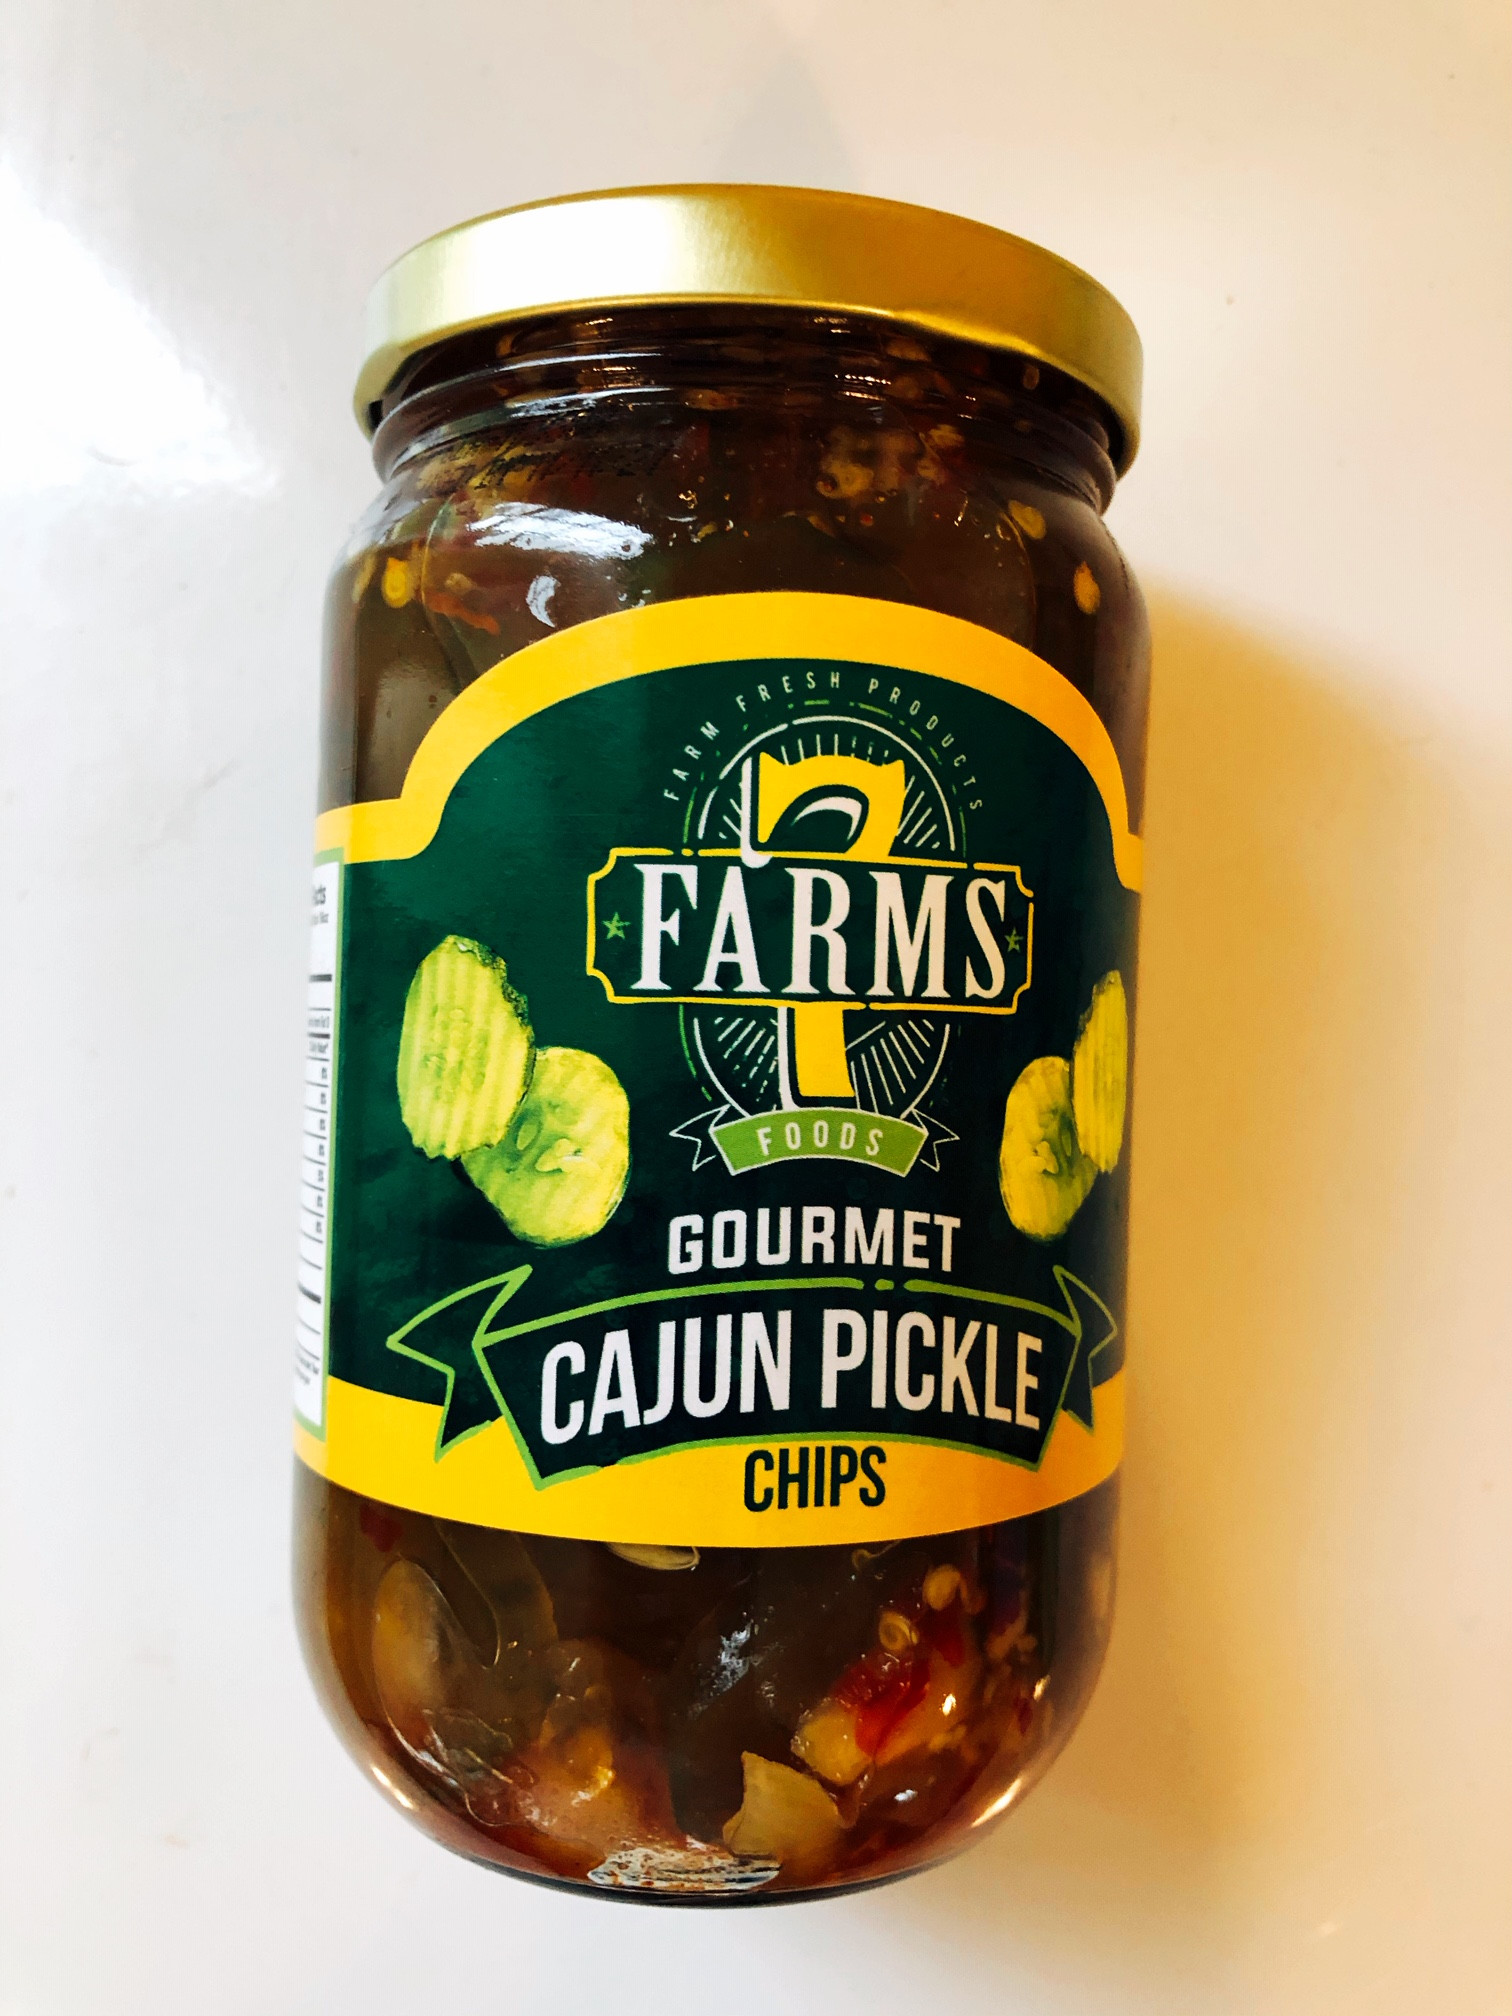 7 Farms - Cajun Pickle